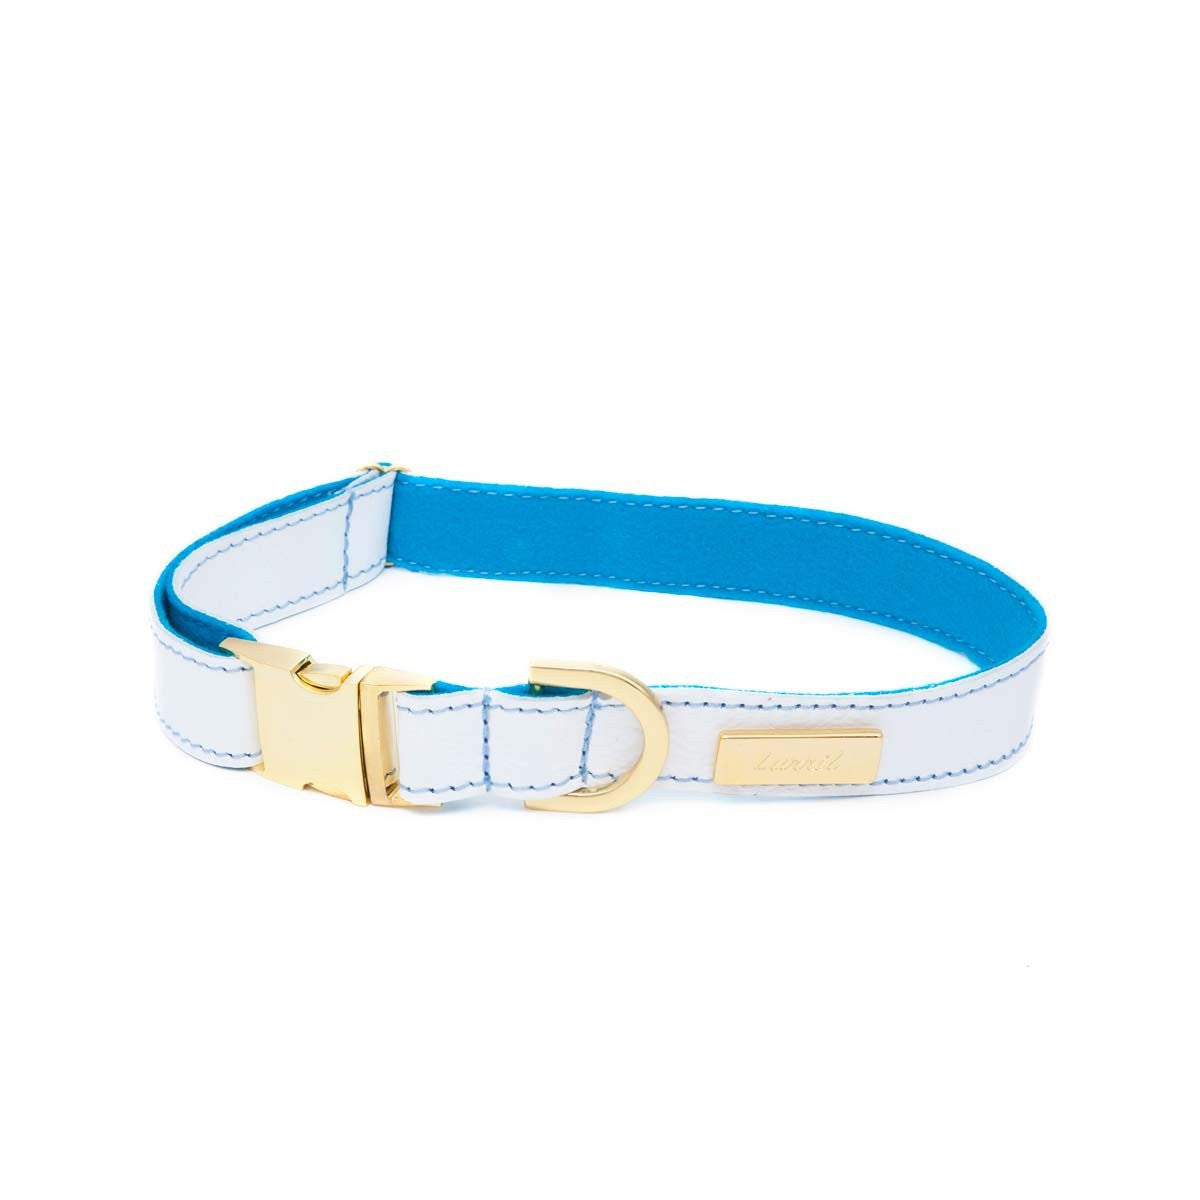 Great Dane Dog Collar - White soft Leather with Wool Felt Lining